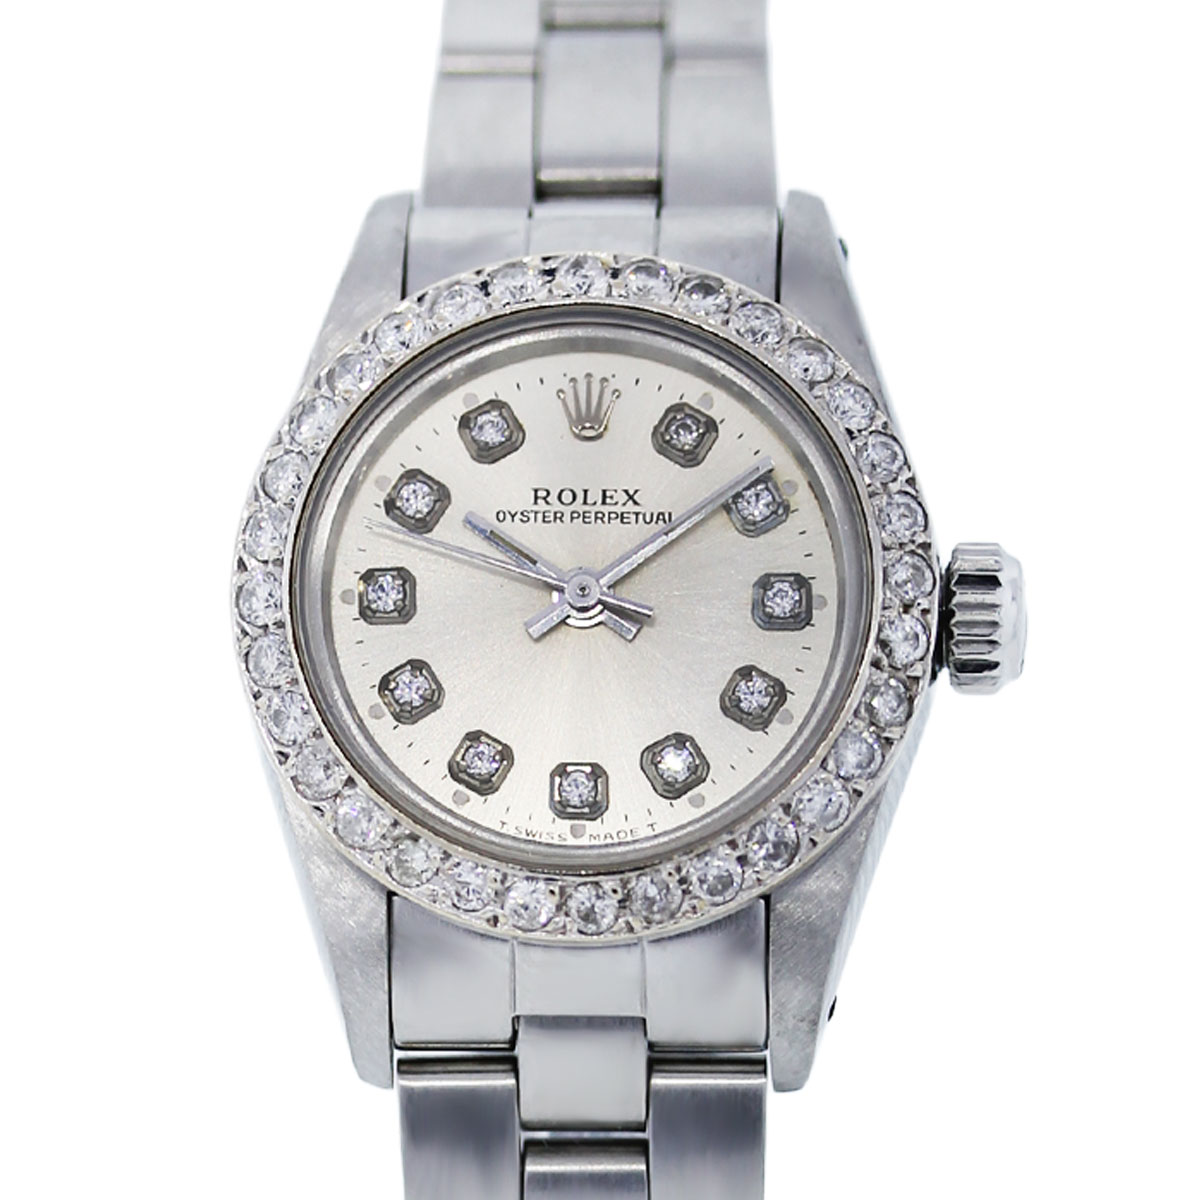 You are viewing this Rolex Oyster Perpetual Diamond Dial and Bezel 67194 Ladies Watch!